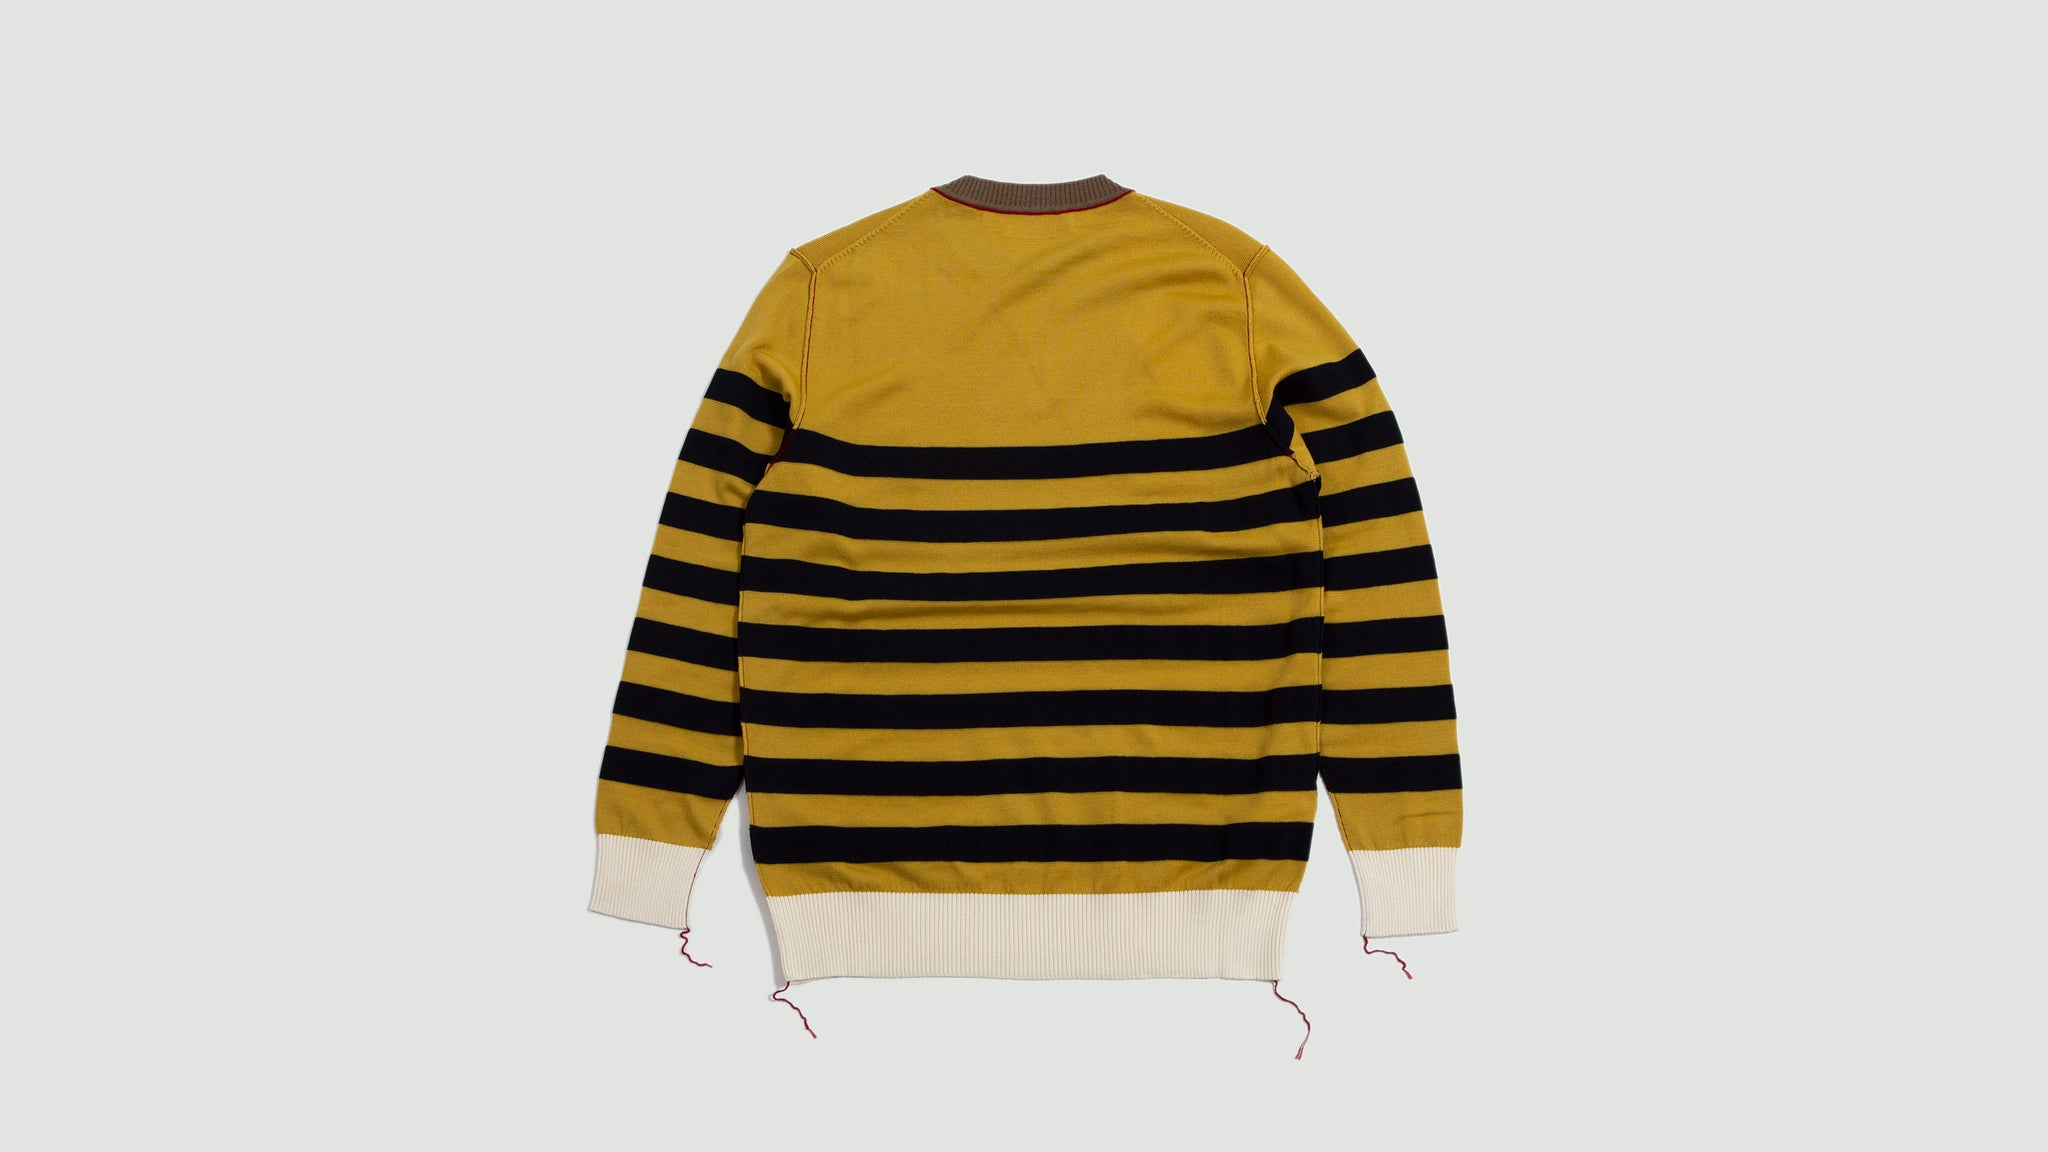 Round Neck Striped Sweater yellow, navy & beige